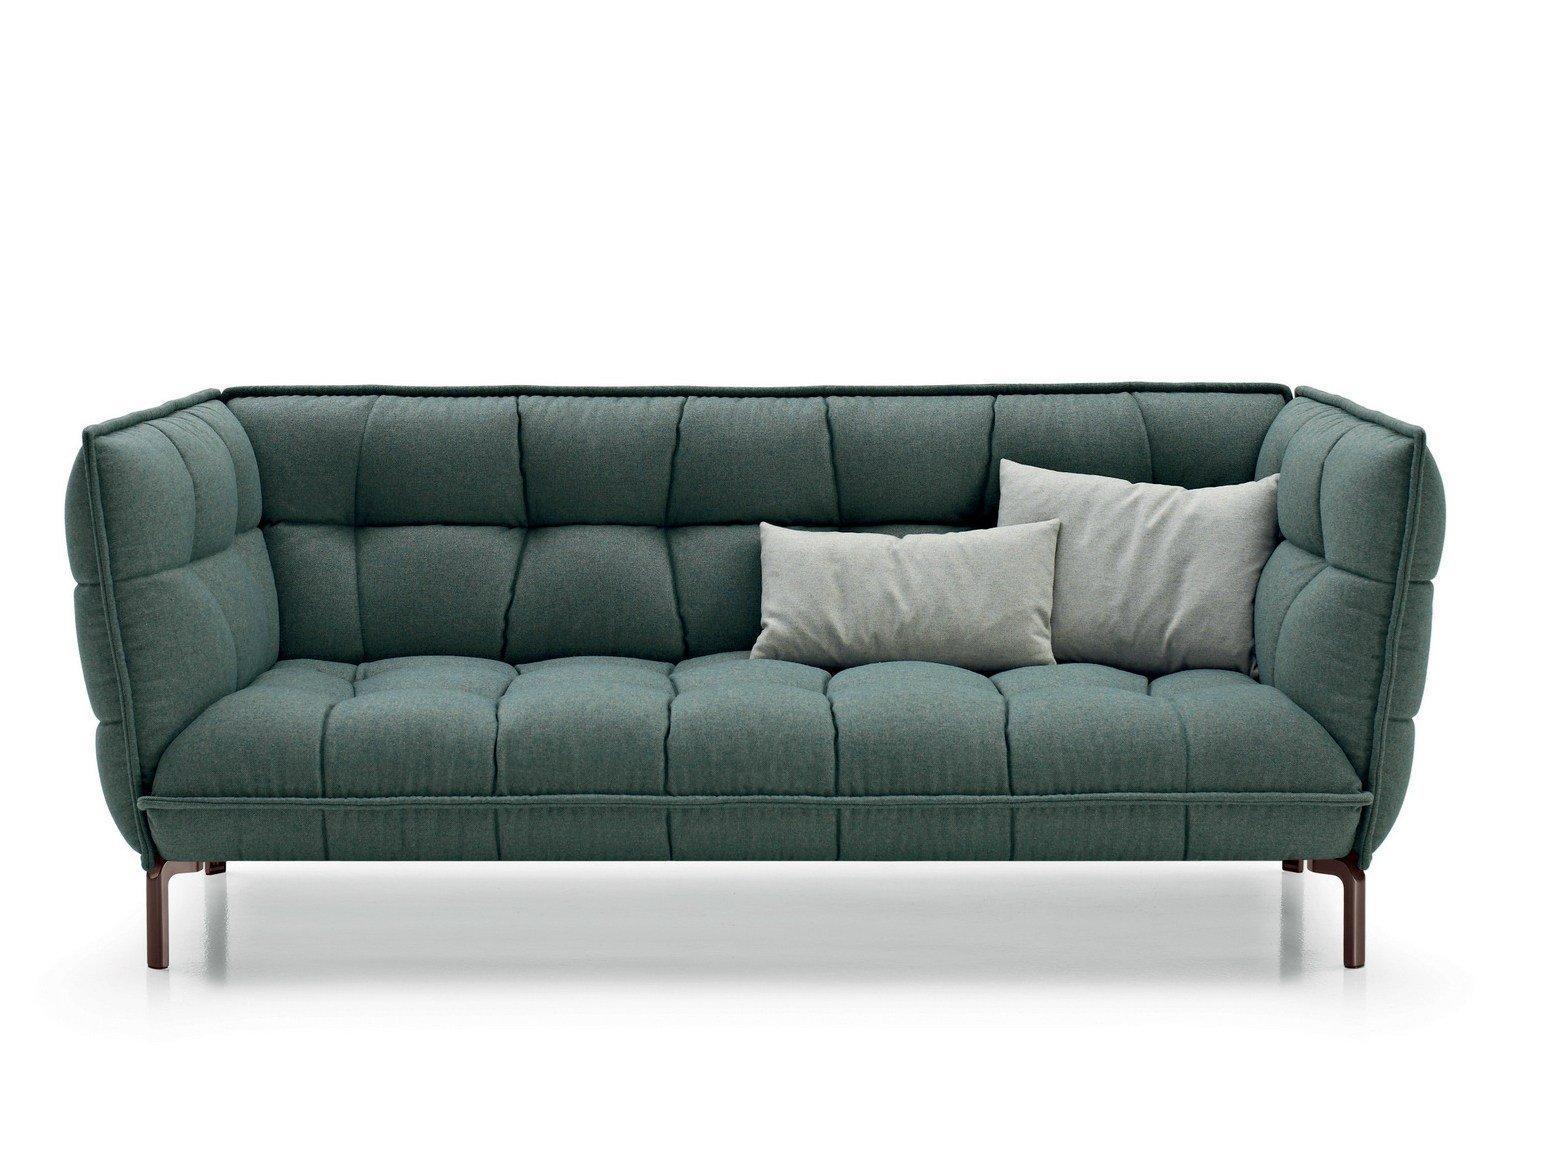 Tufted fabric sofa husk sofa by b b italia design patricia for B b couch